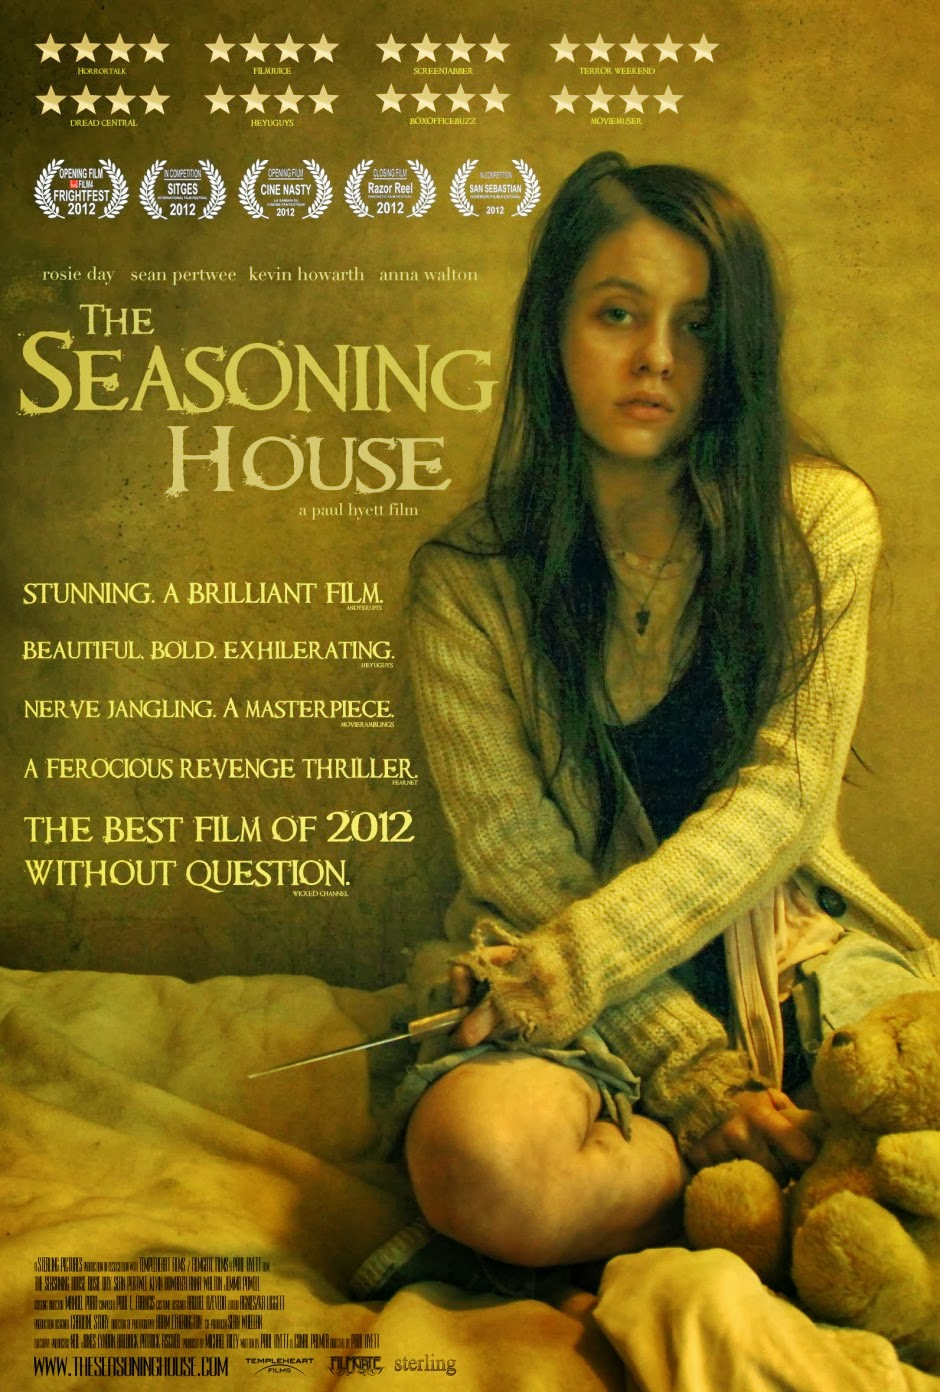 the girl who loves horror: movie review: the seasoning house (2012)